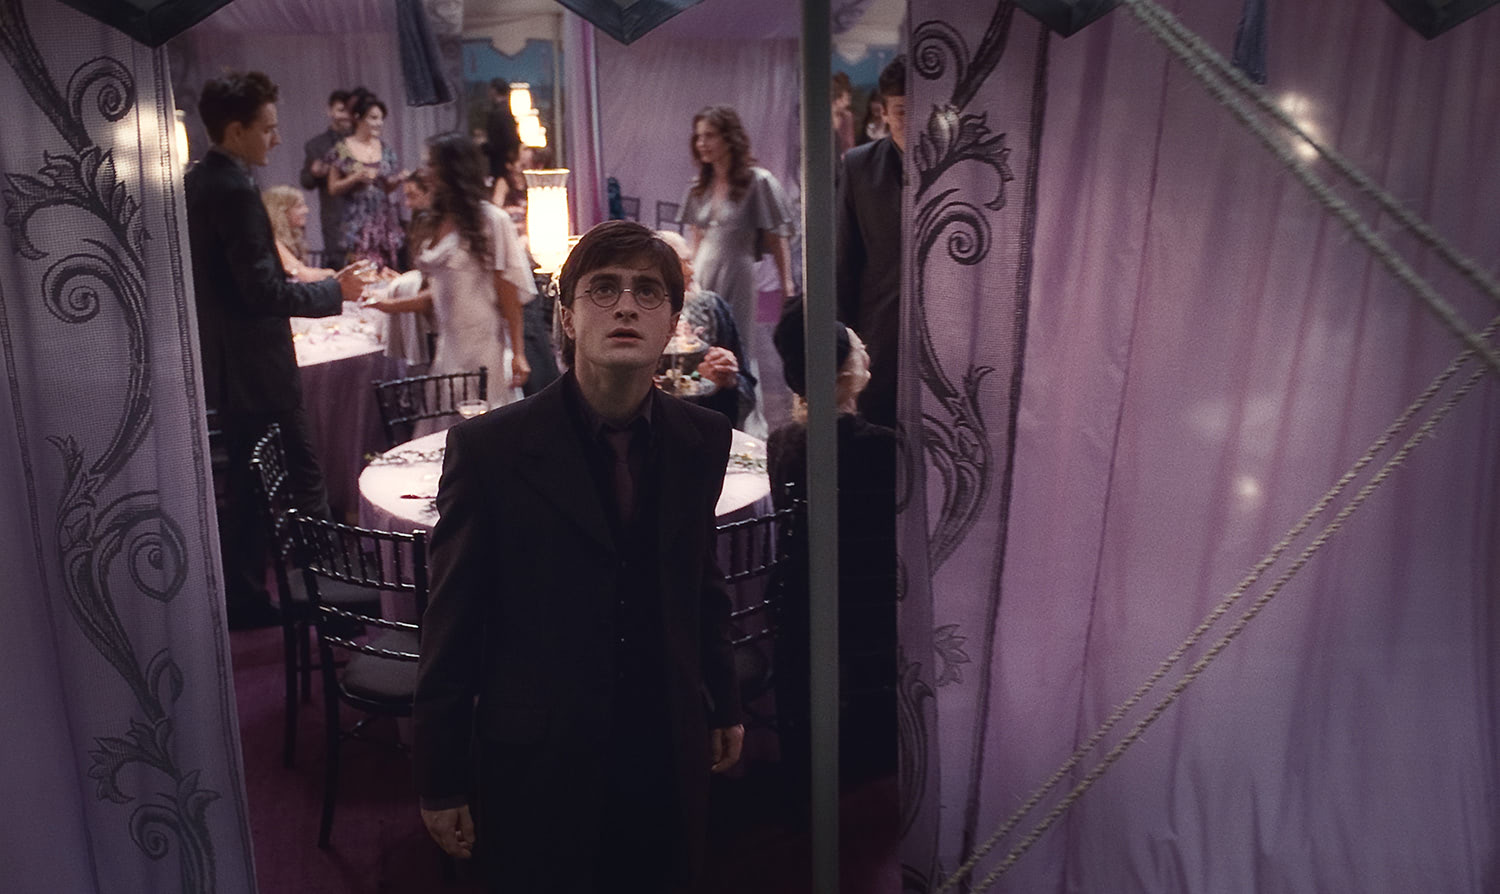 Harry in the wedding tent